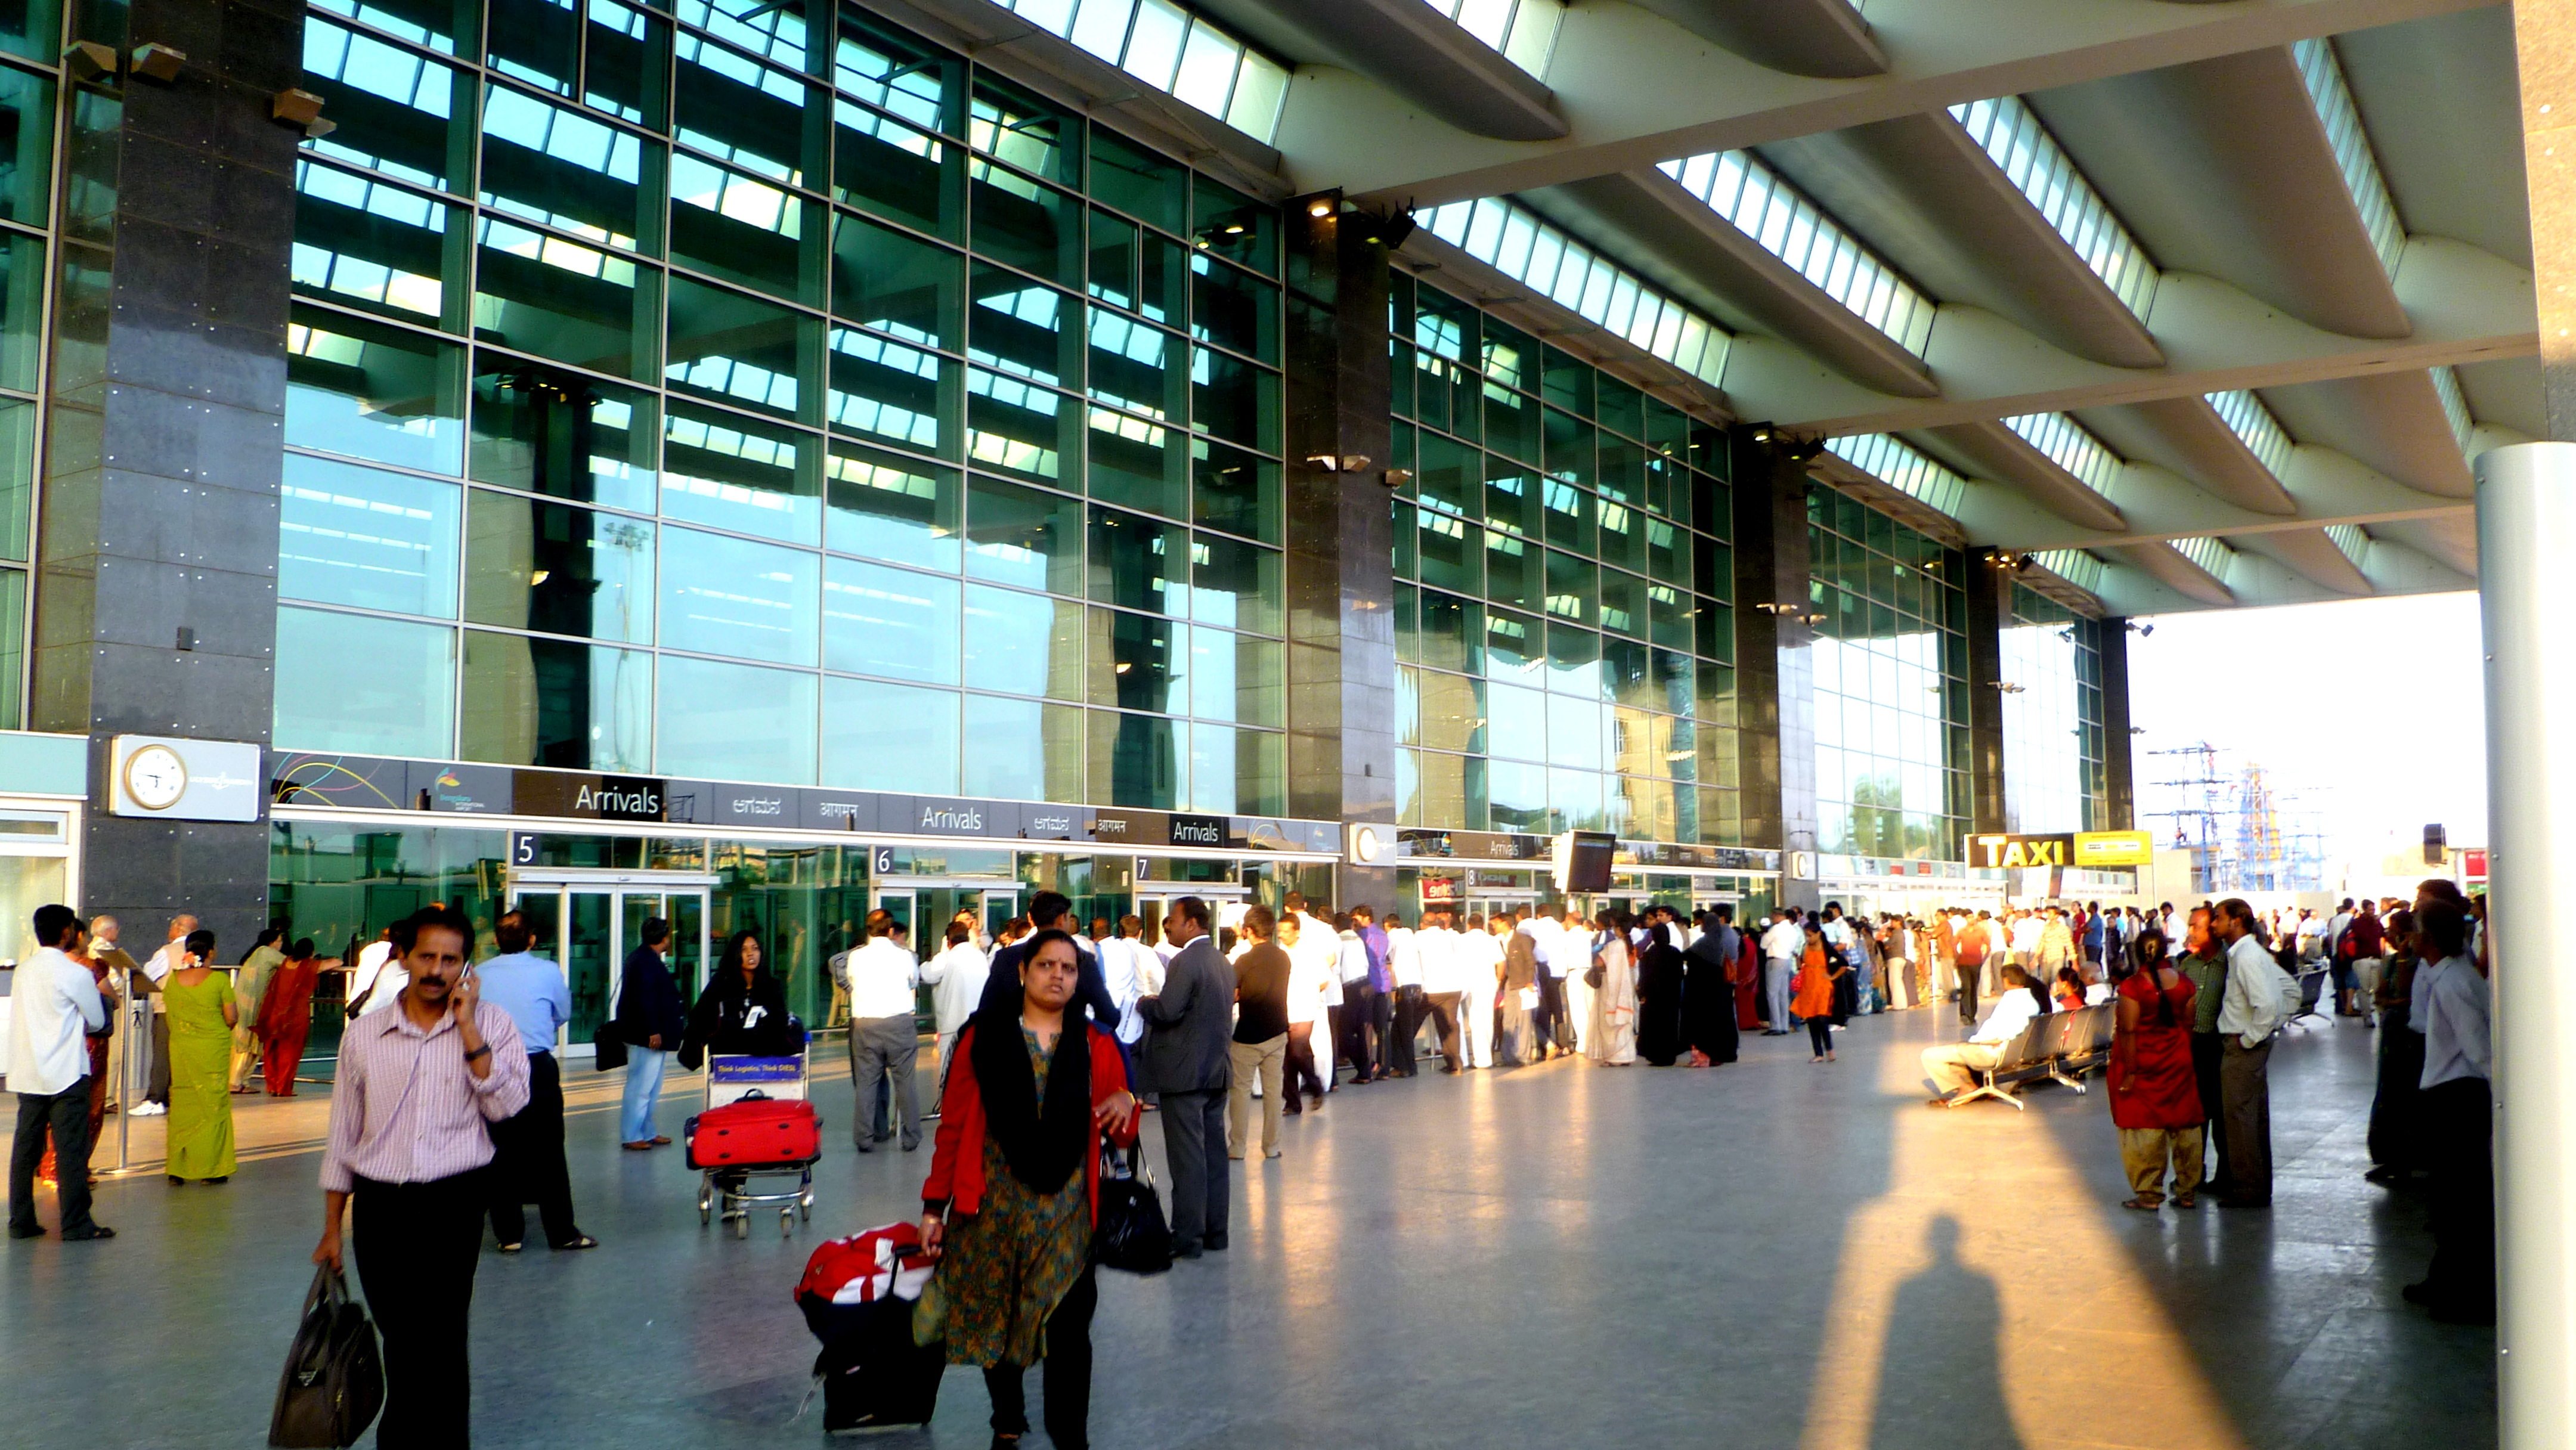 <p>Bangalore International Airport terminal, now powered by solar energy. Photo by Herry Lawford/Flickr</p>